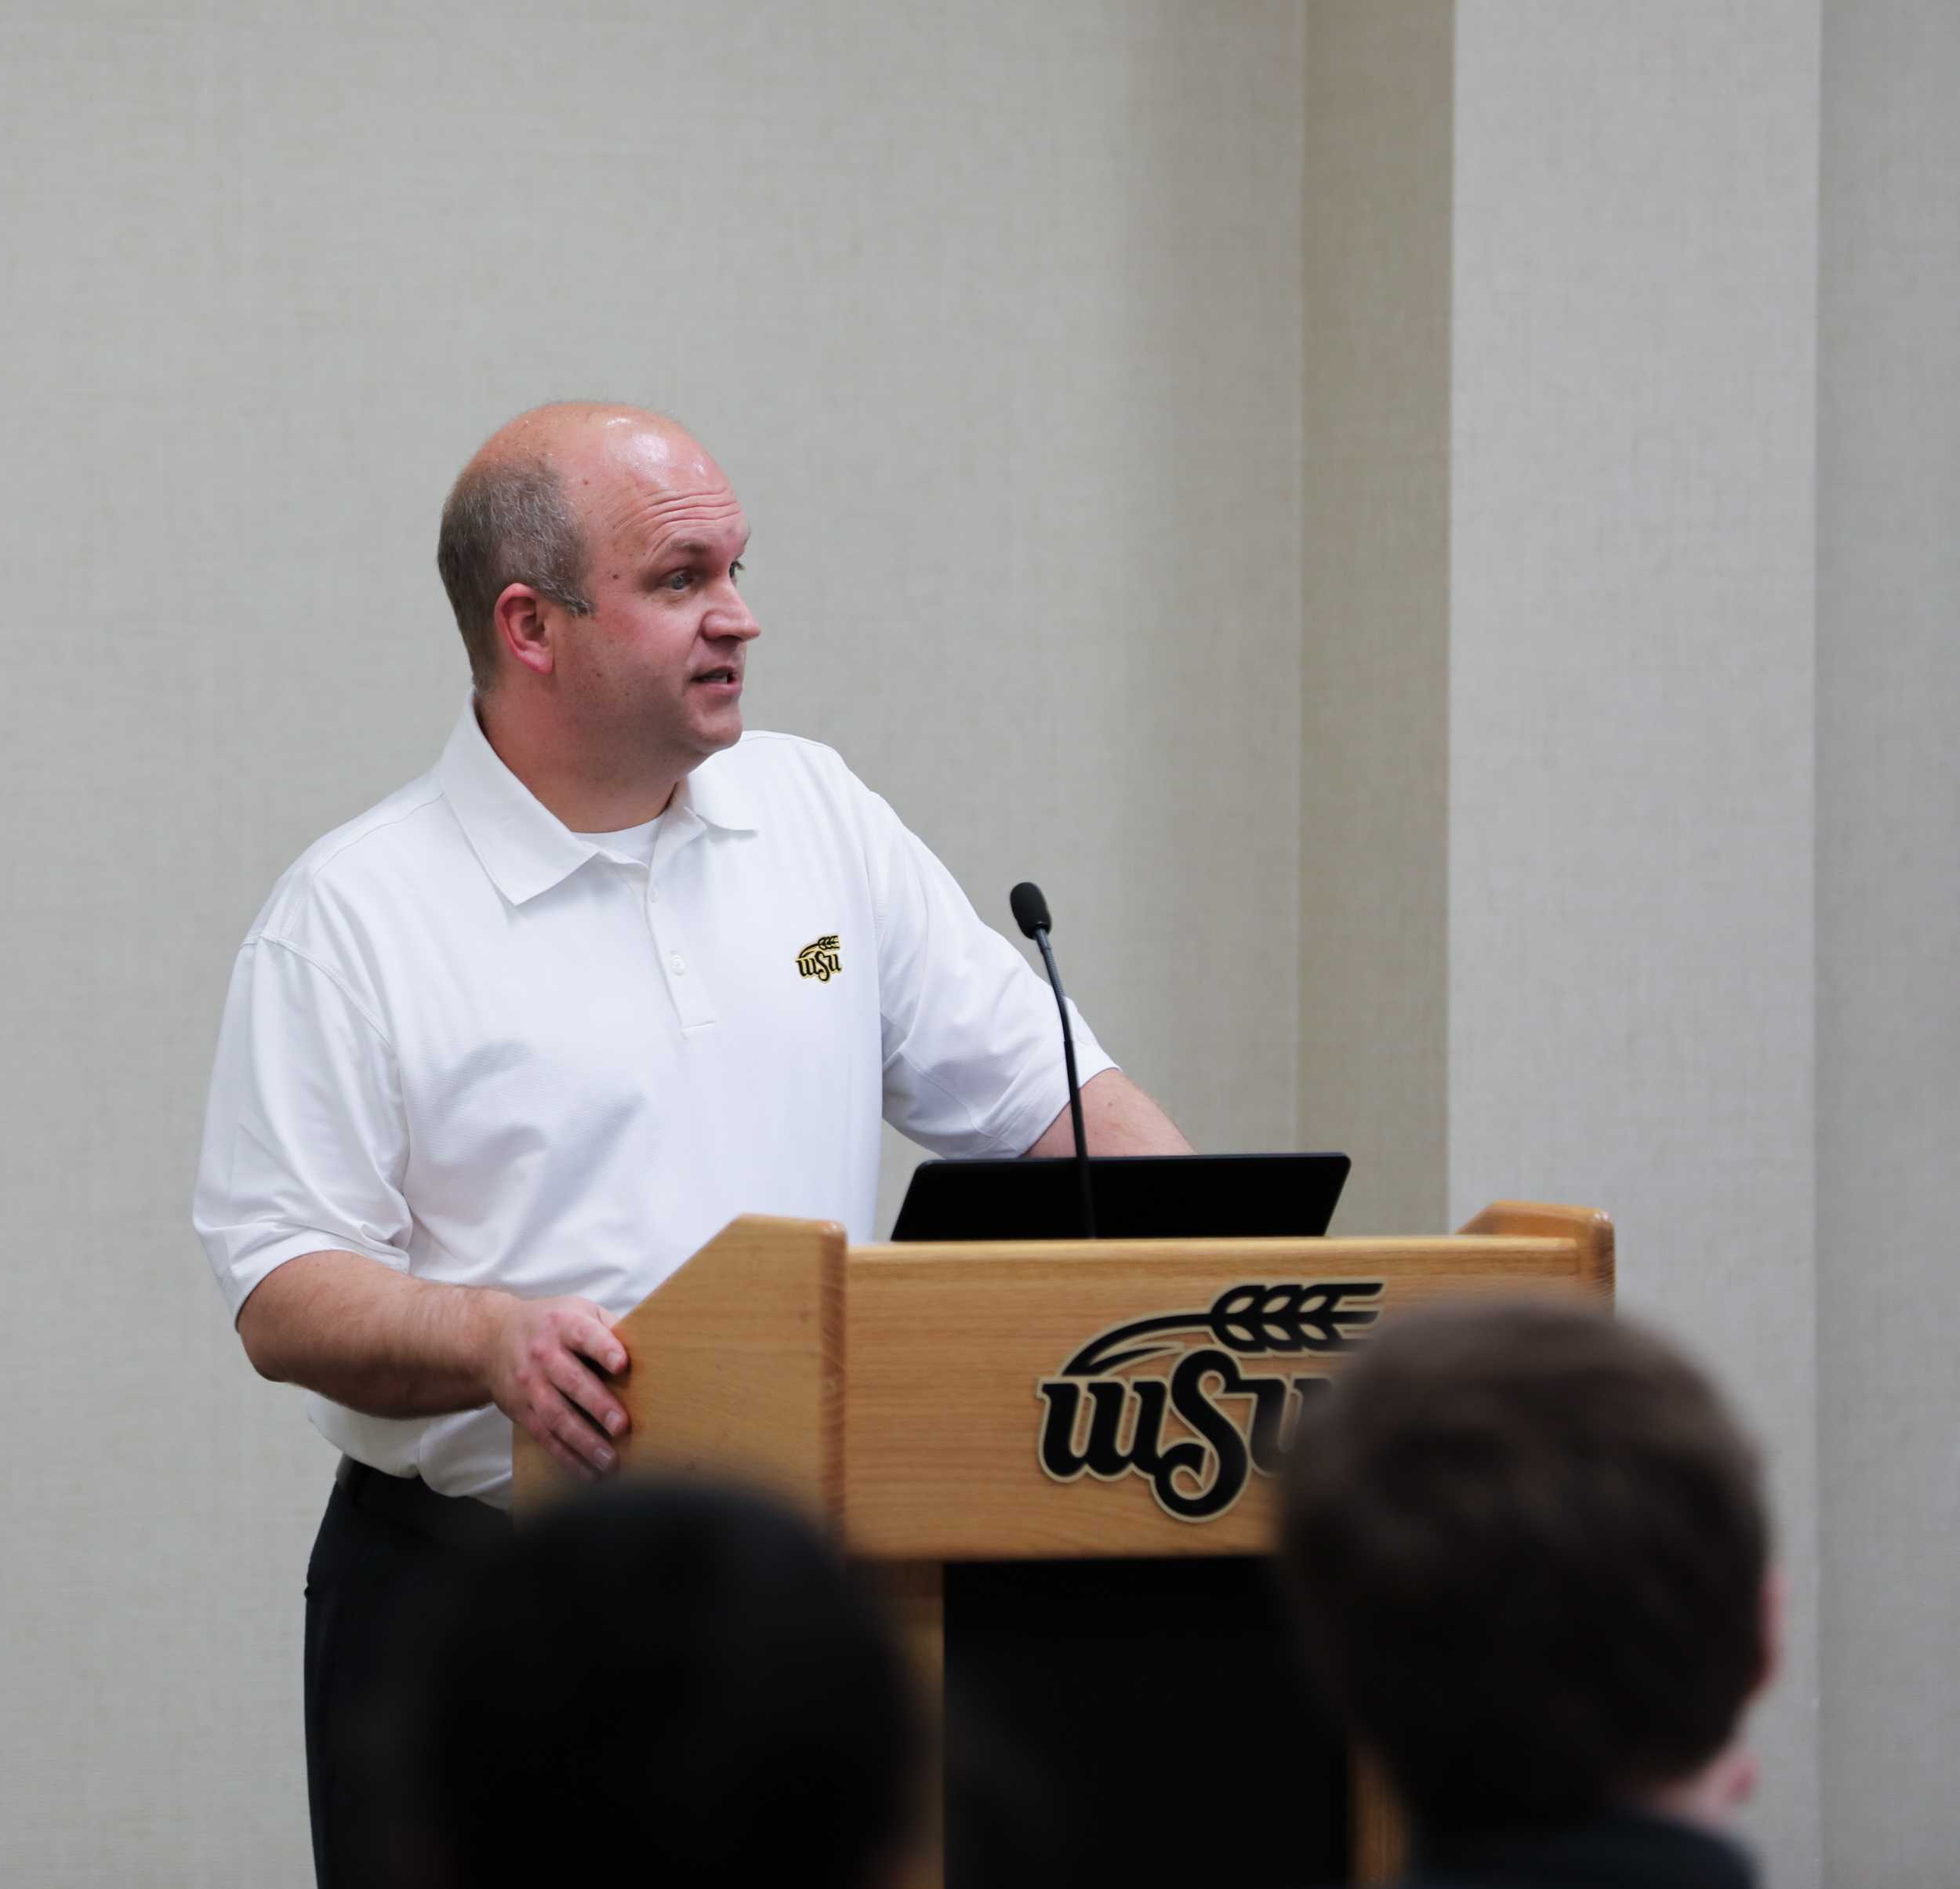 John Tomblin, vice president for research and technology transfer, speaks at a student government association meeting. Tomblin is the president of the nonprofit organization that manages Innovation Campus. (File photo; Mar. 1, 2017)